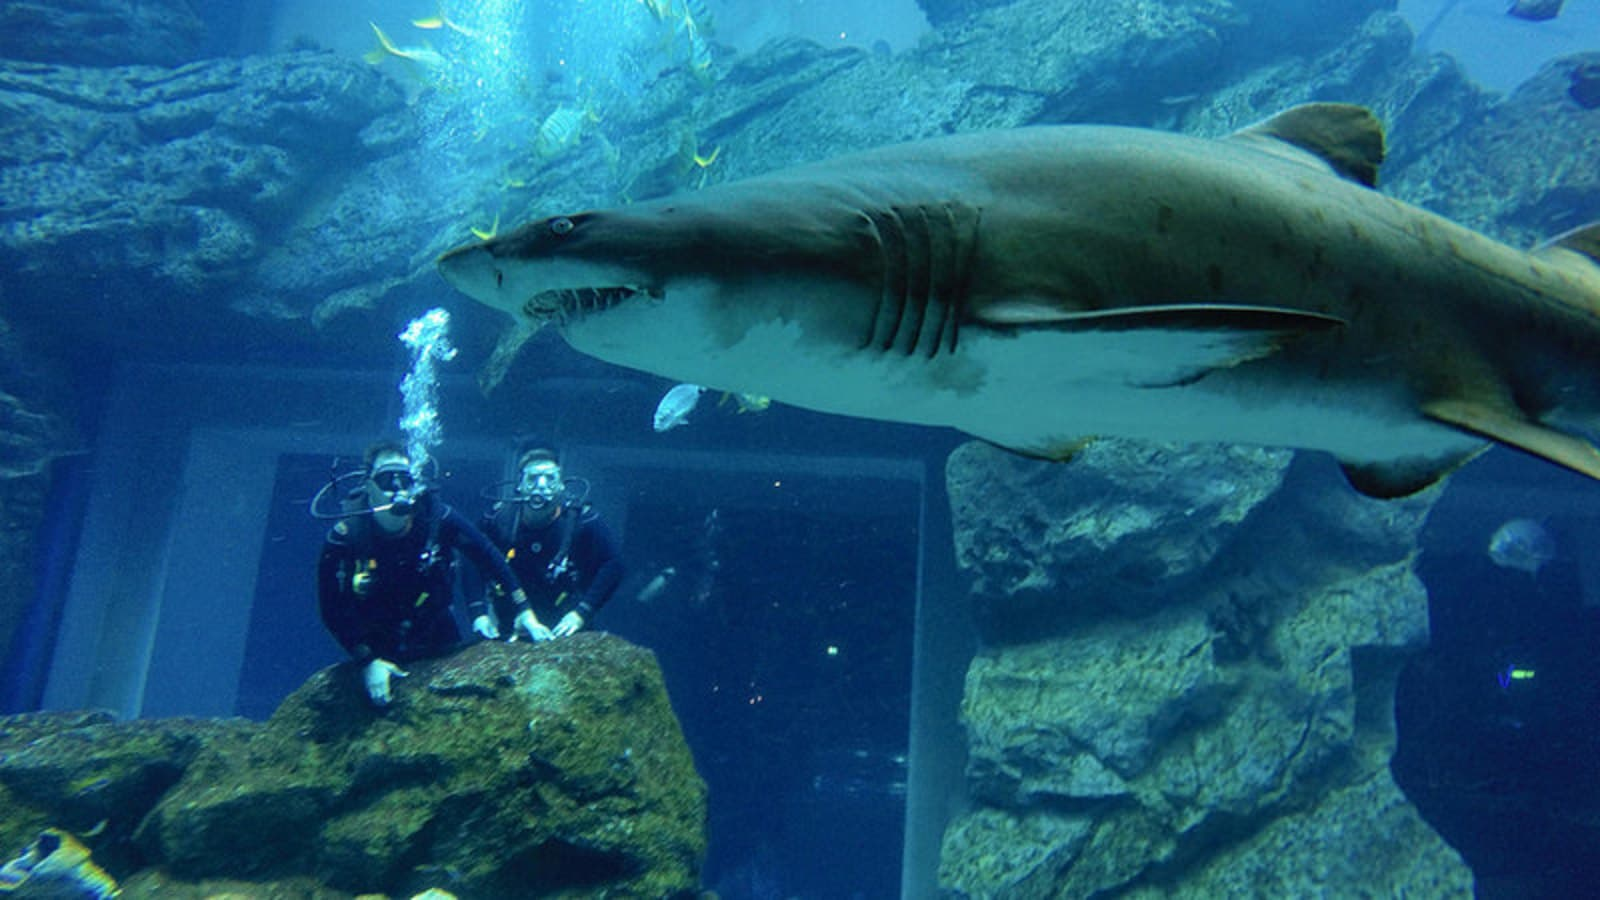 Swimming with sharks in Dubai